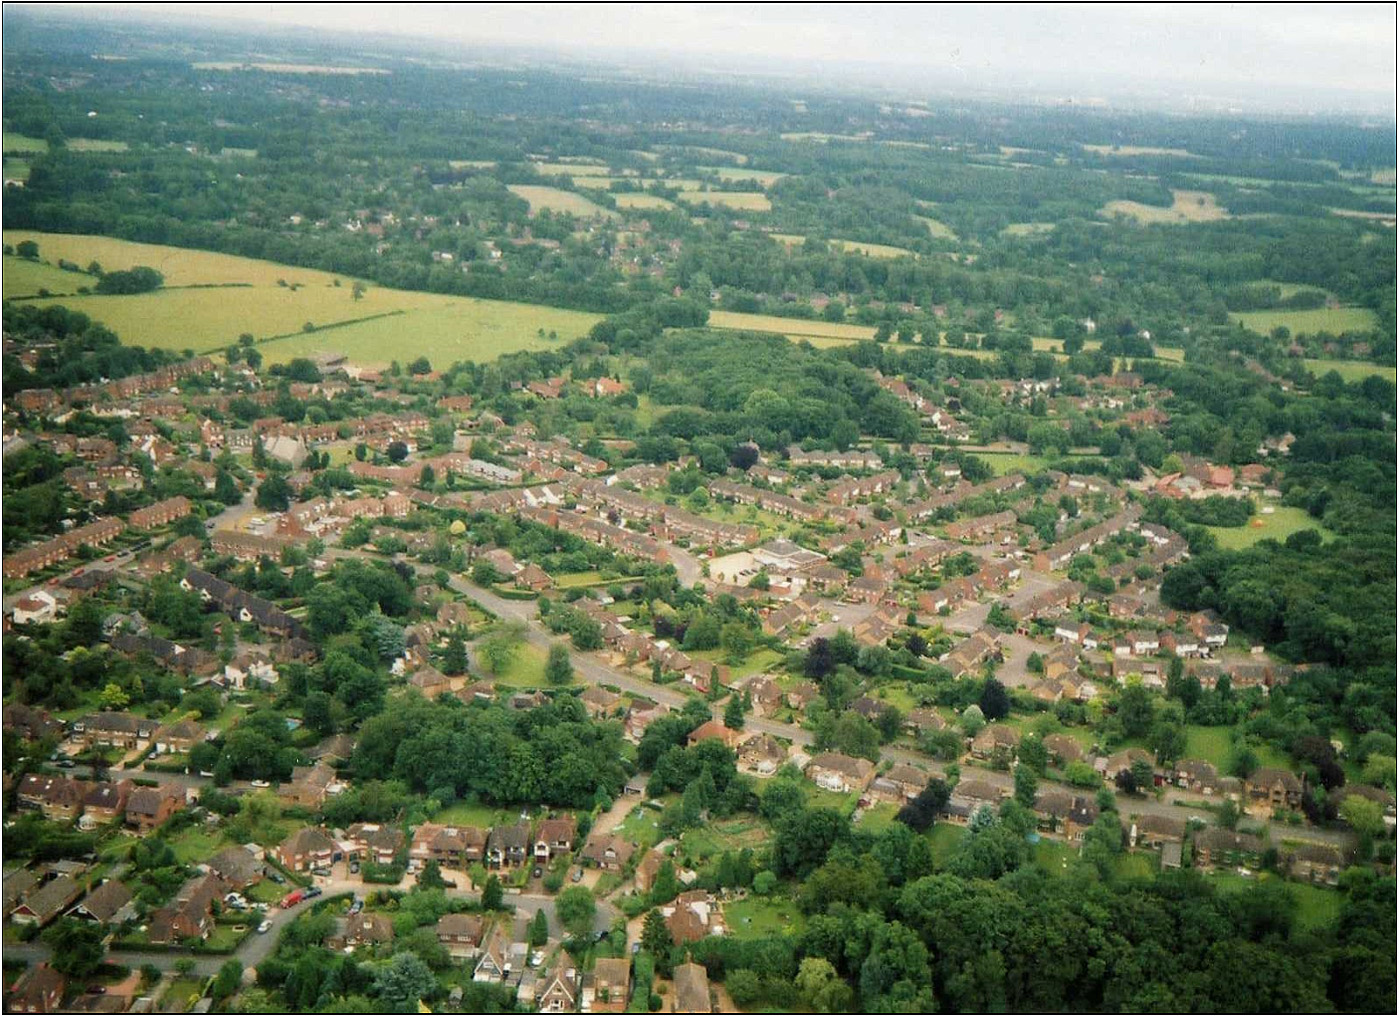 Seer green seen from the air